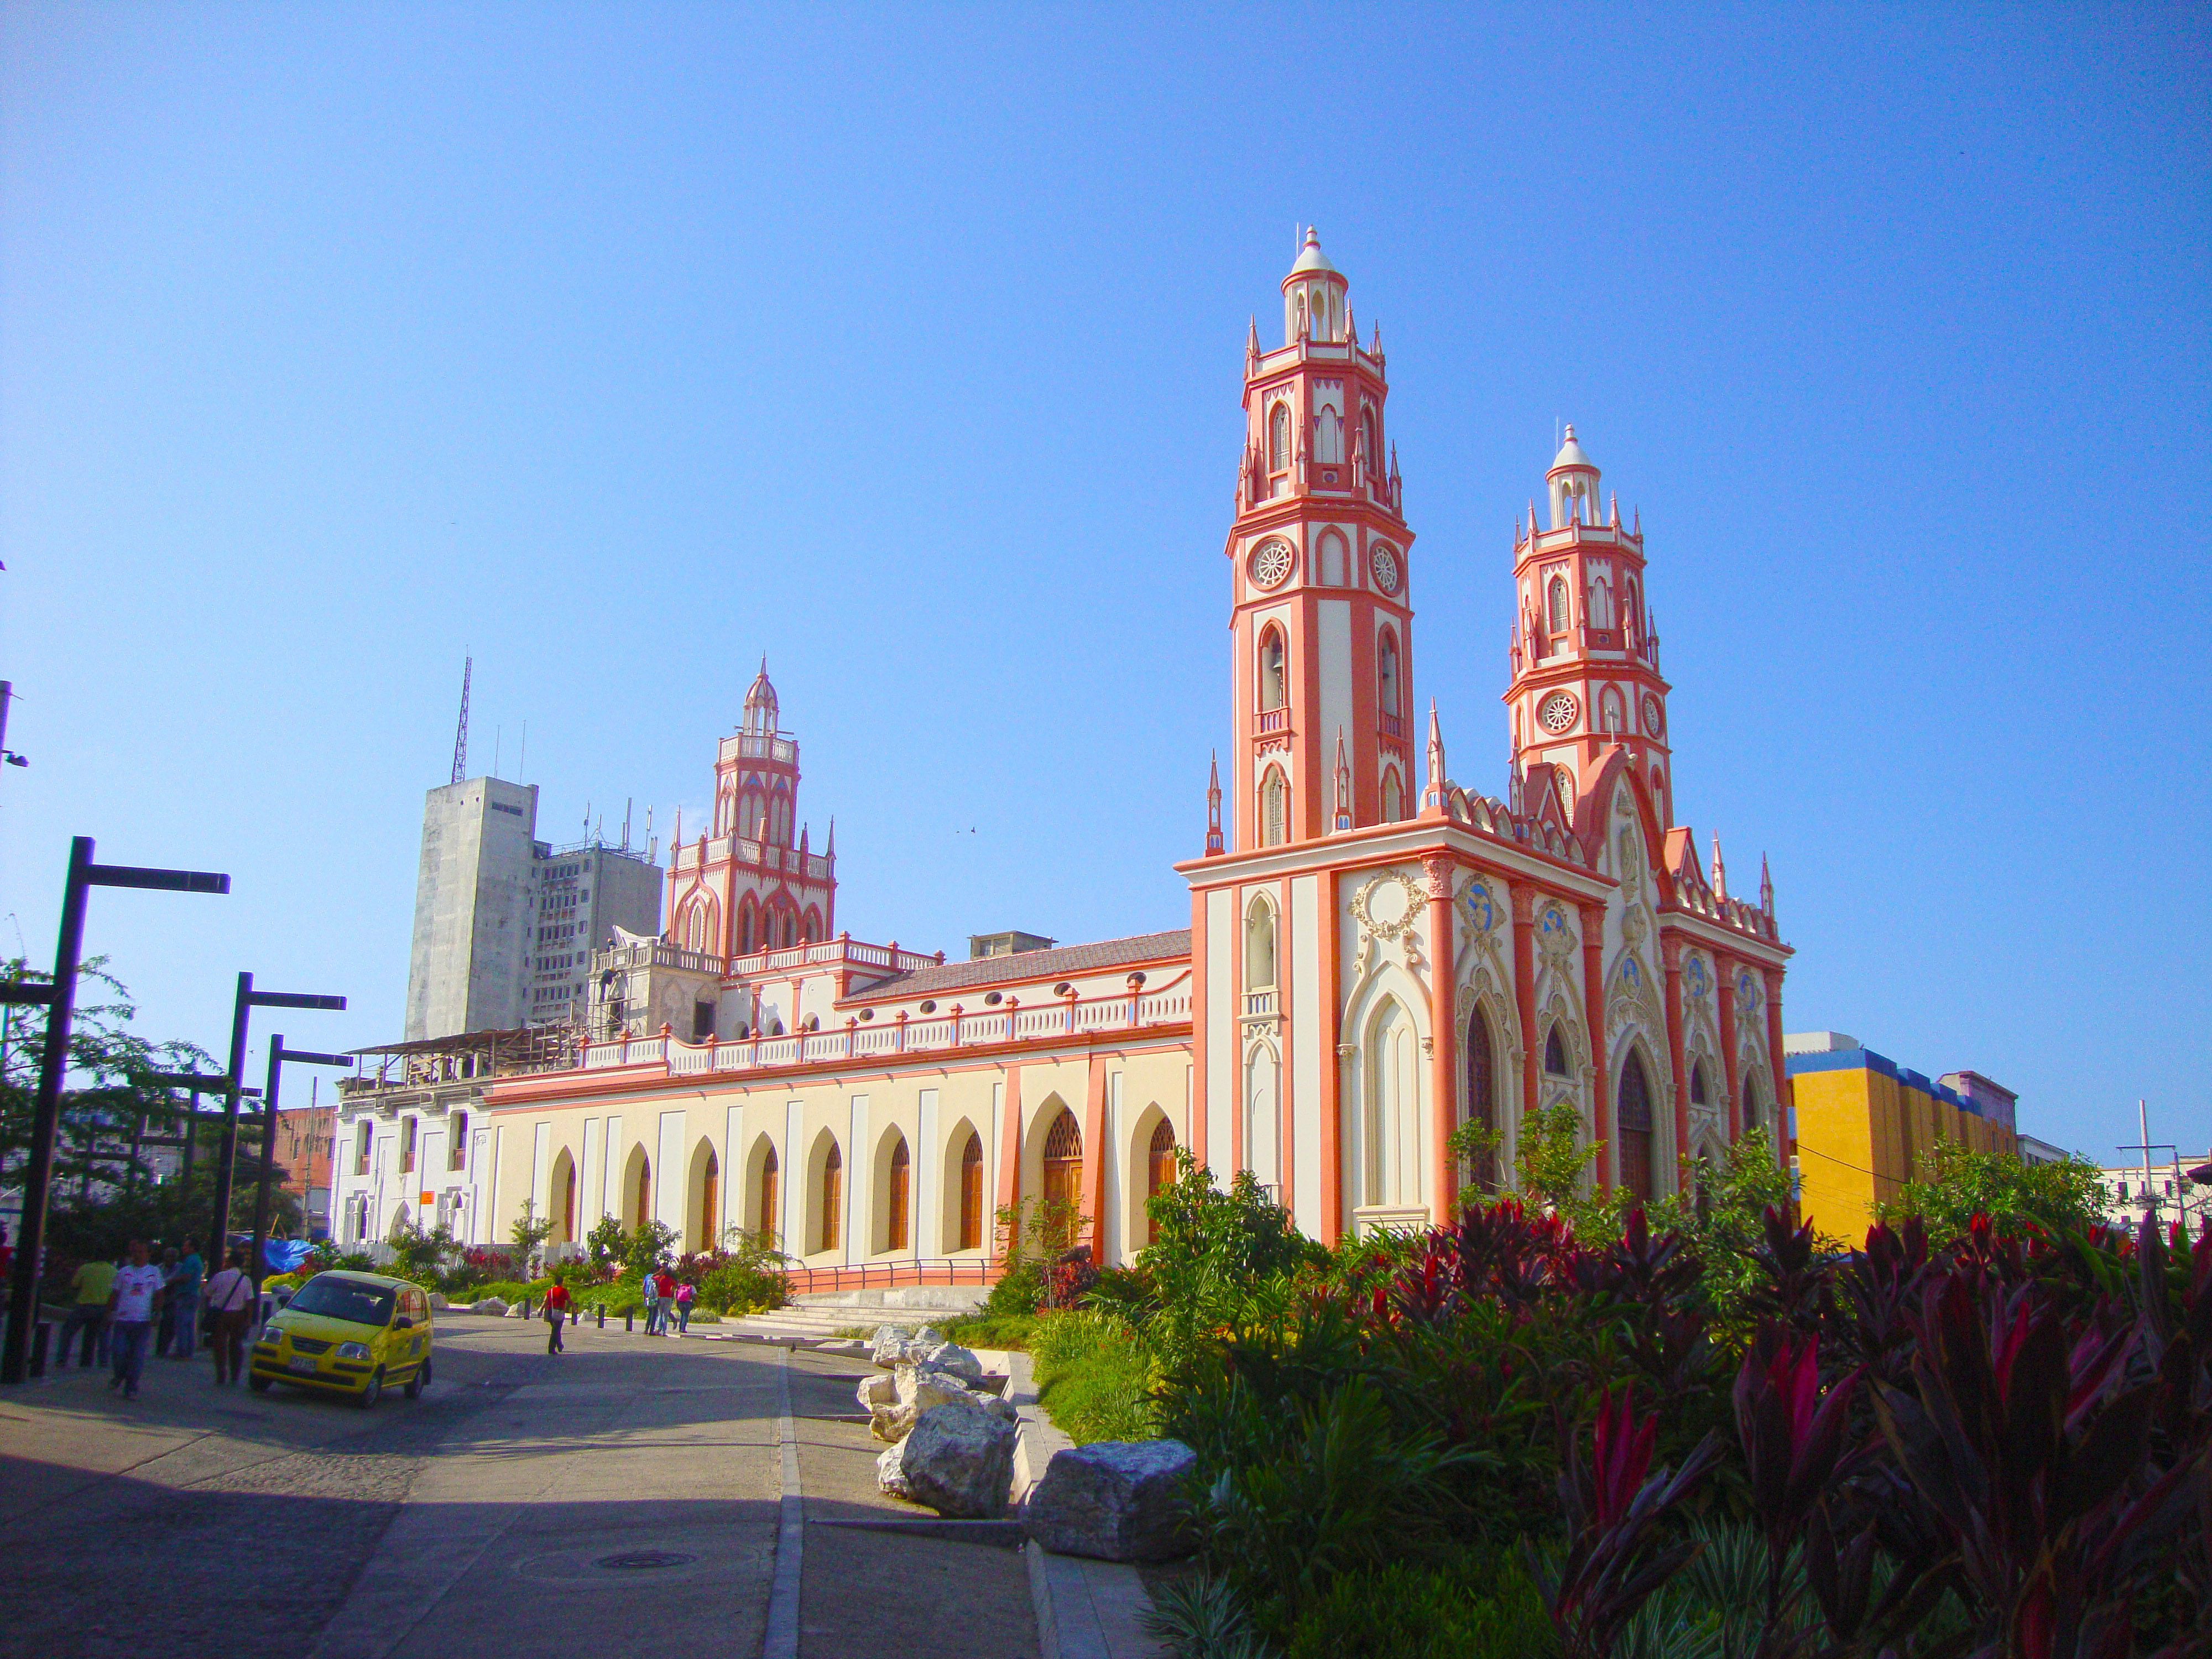 Large Church In Barranquilla Colombia Image Free Stock